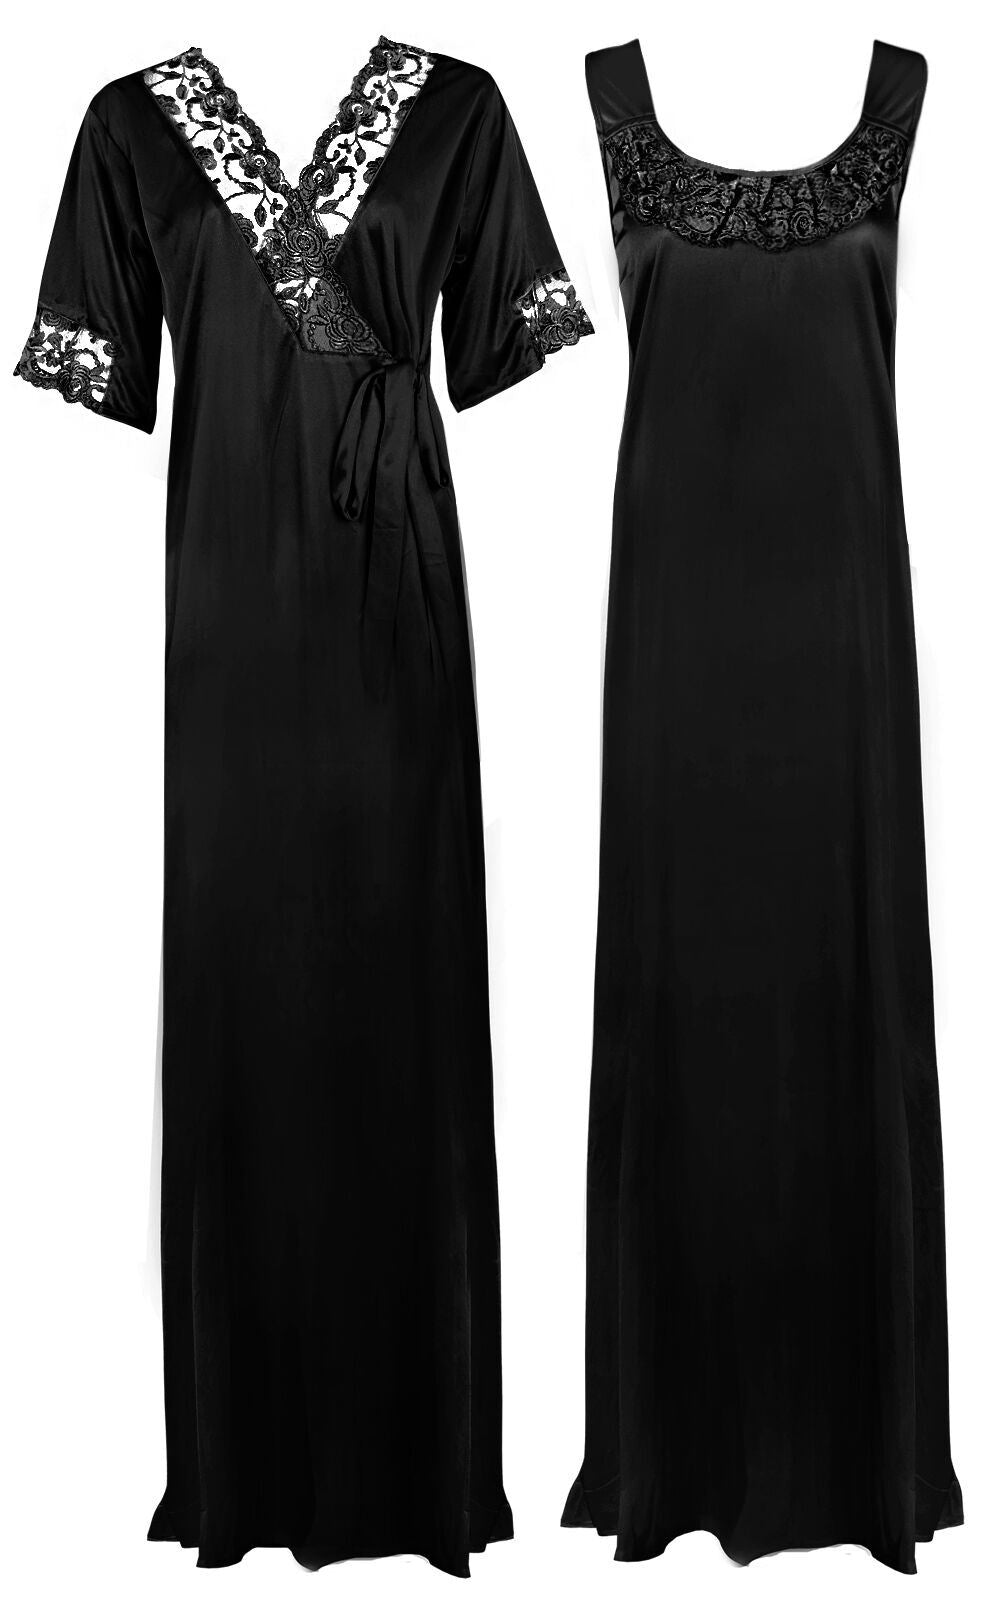 Women Plus Size 2 Pcs Satin Nightdress - XL. 2XL BLACK  Hautie Nightfashion